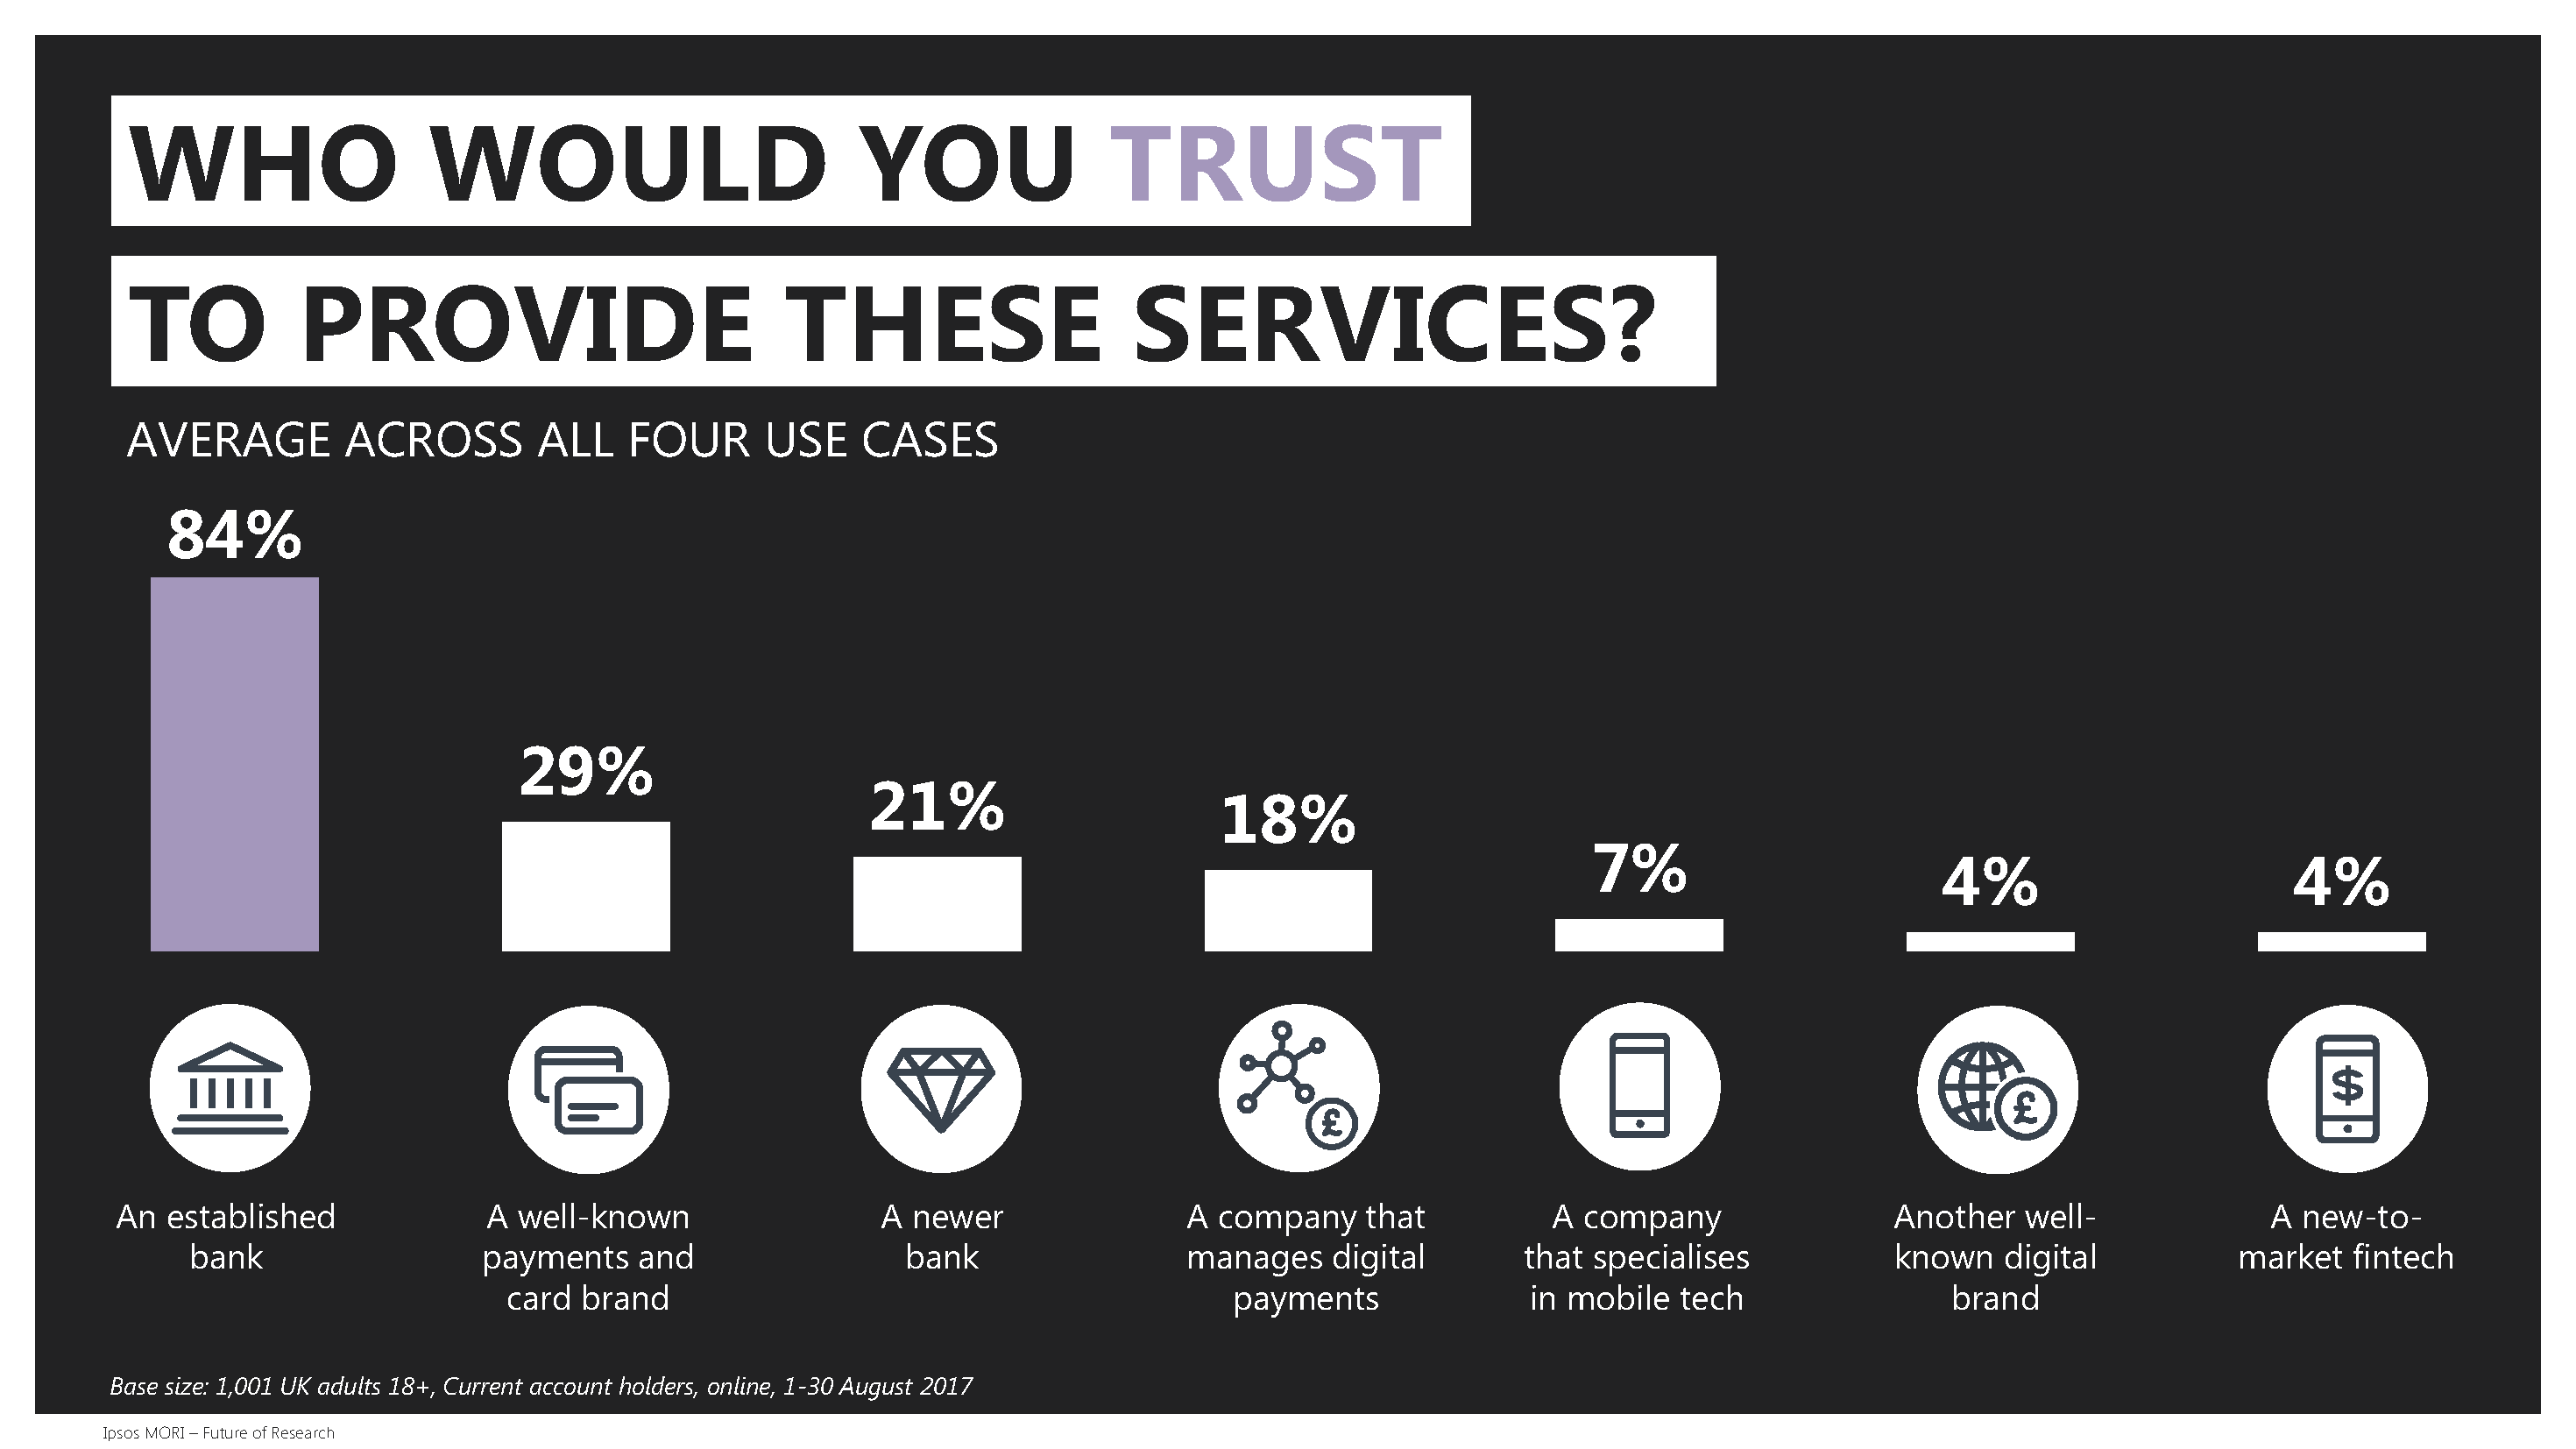 Who would you trust to provide these services?